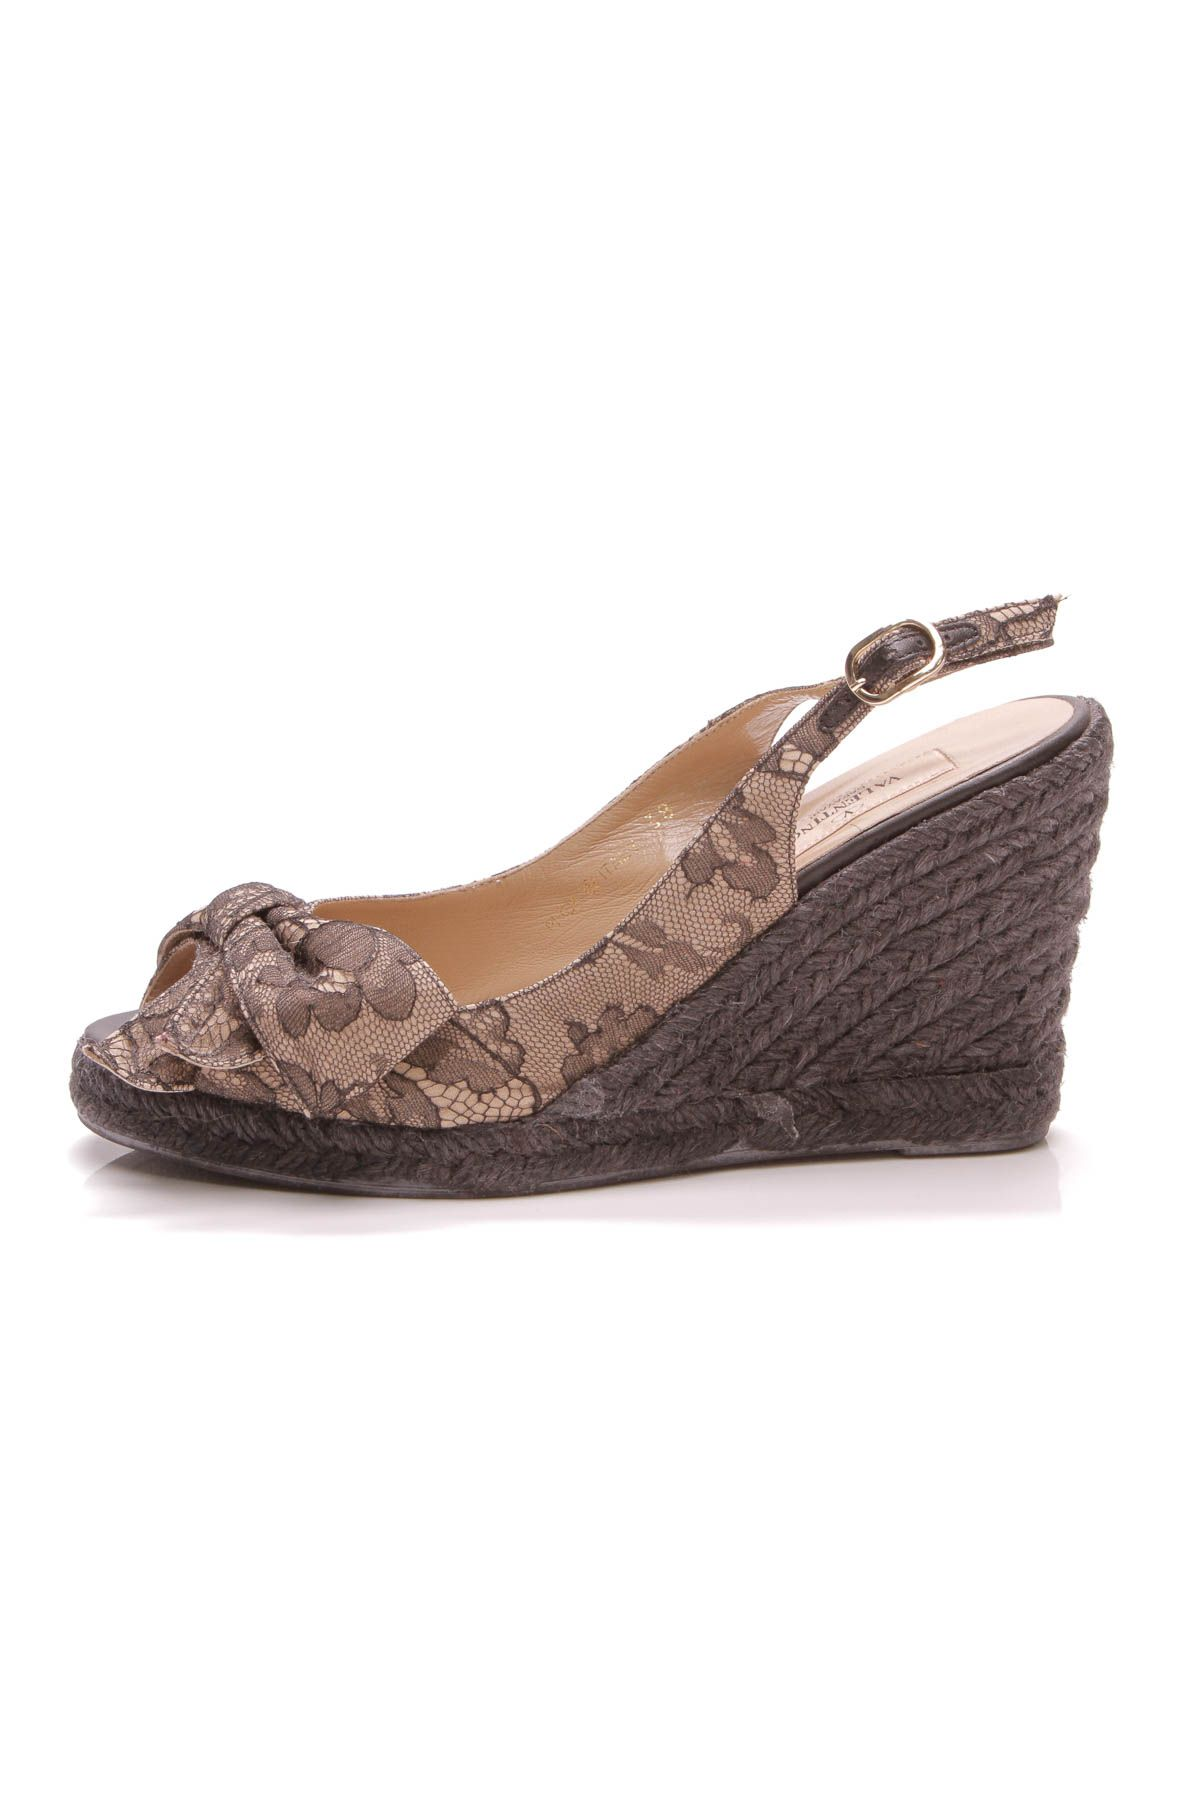 fe83735bb9d Valentino Mena Espadrille Wedge Sandals - Black Lace | Just For ...